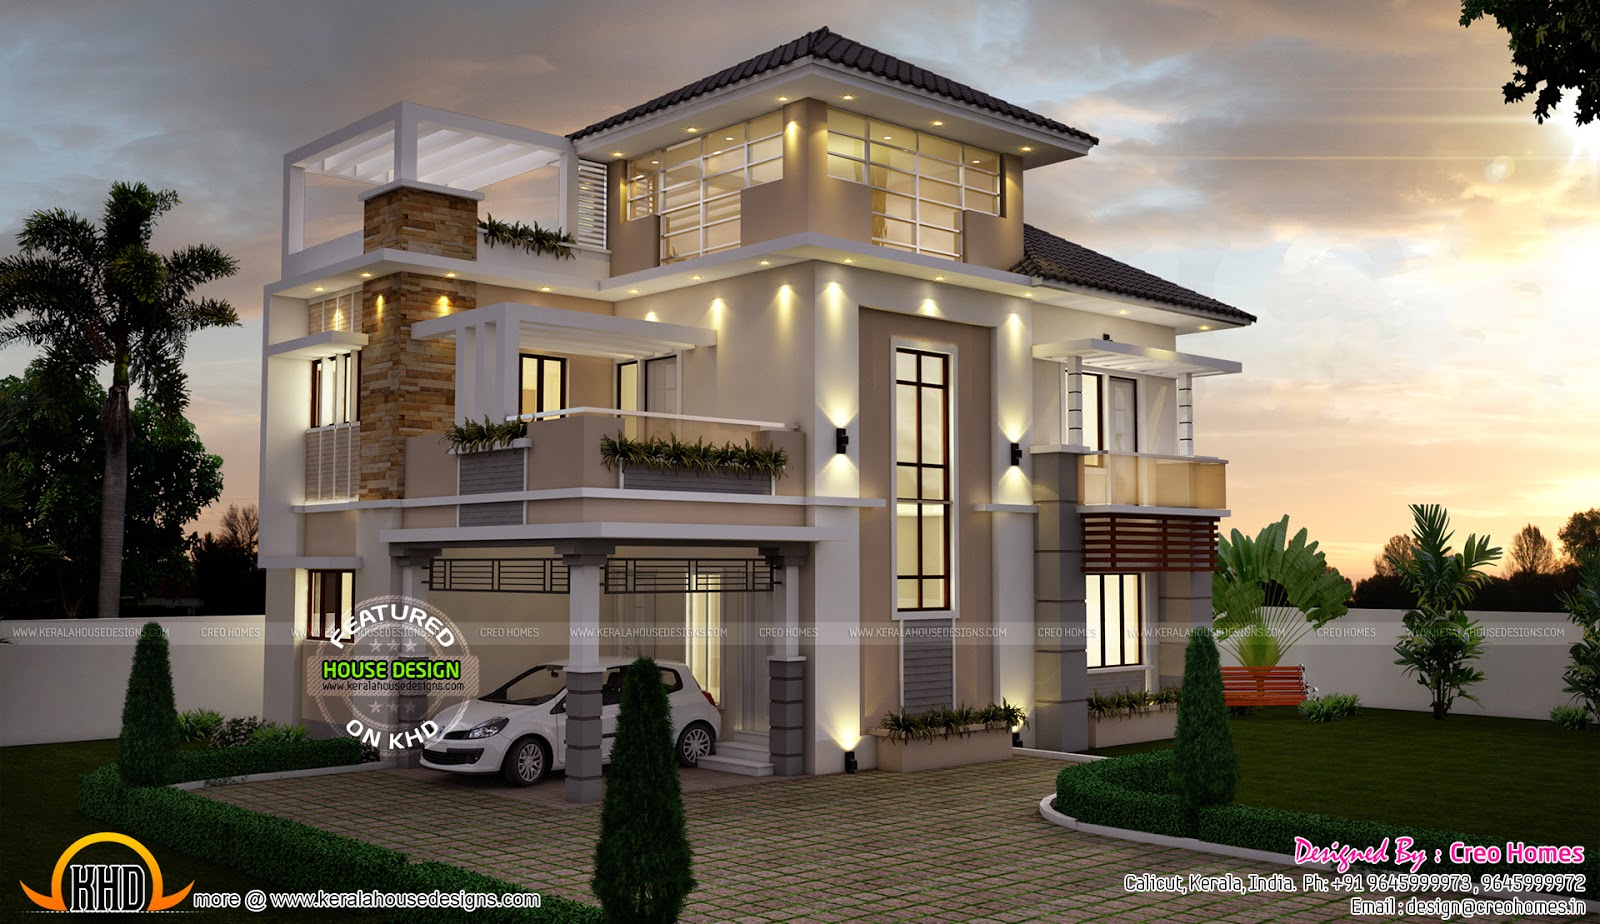 Super stylish contemporary house kerala home design and floor plans - Contemporary house designs ...